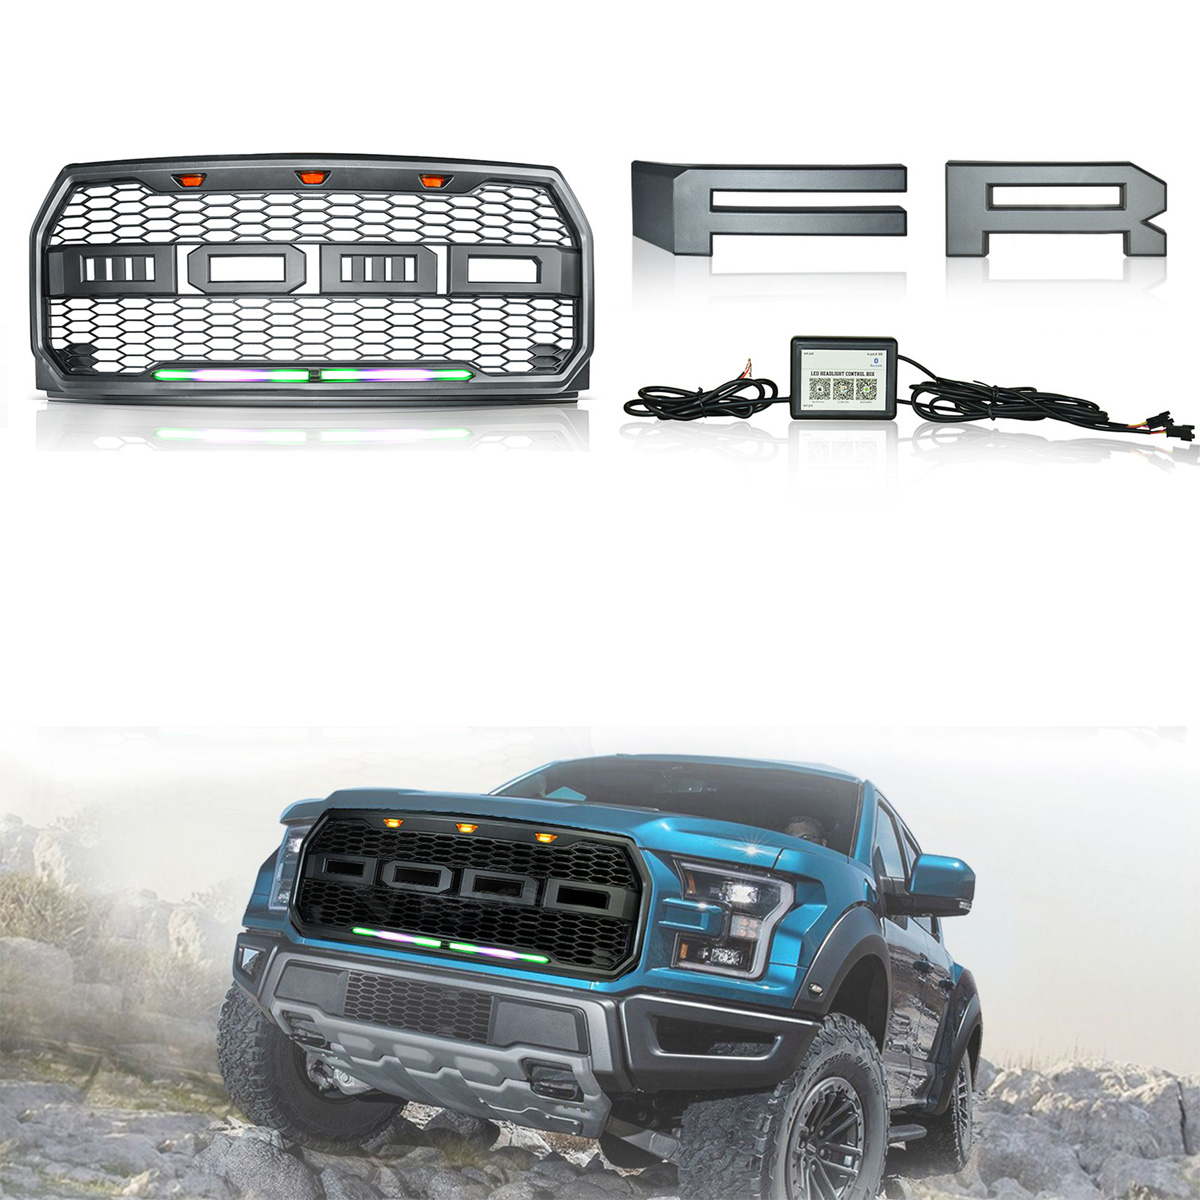 Car Raptor Styling Front Grille With RGB DRL LED Lamp And Emblem Housing For Ford Raptor F150 2015 2016 2017